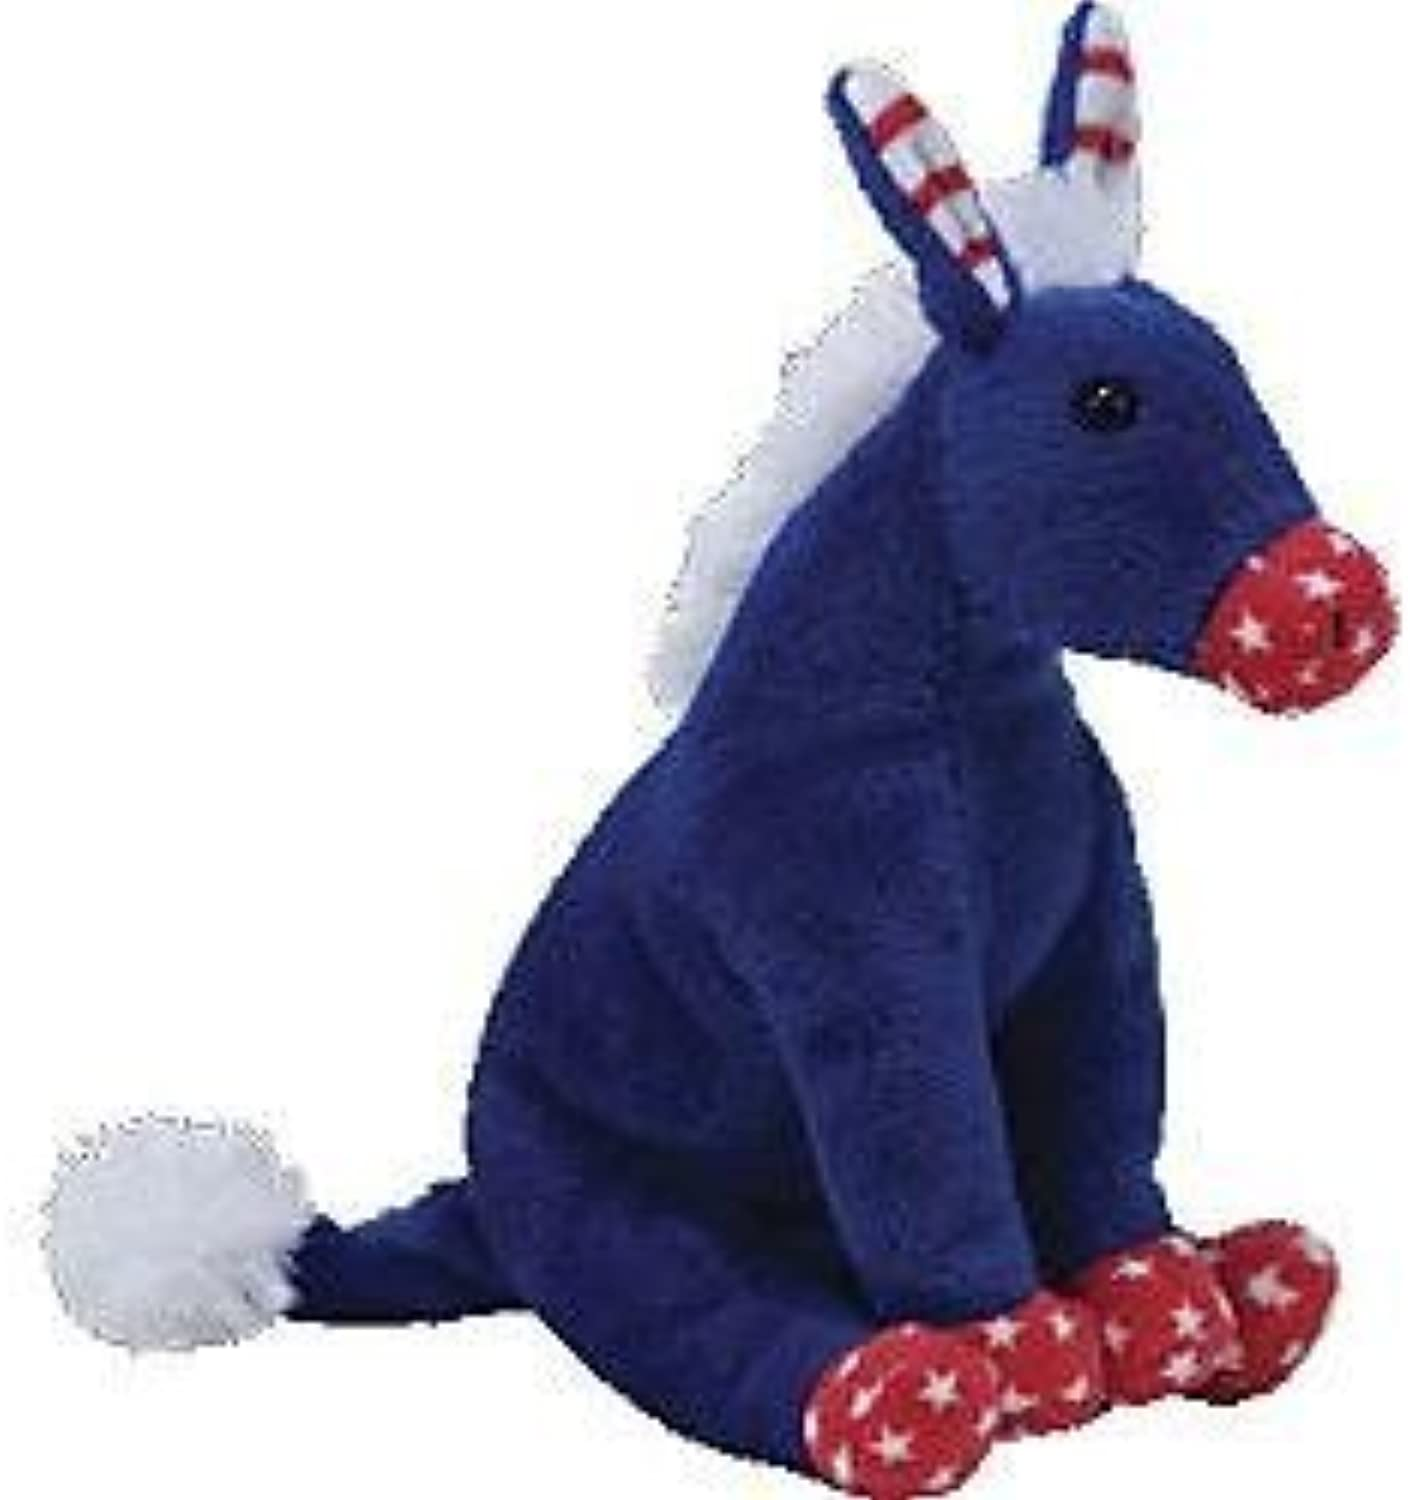 Ty Beanie Babies 2.0 Lefty Patriotic blueee Donkey by Ty Beanie Babies 2.0 Lefty Patriotic blueee Donkey